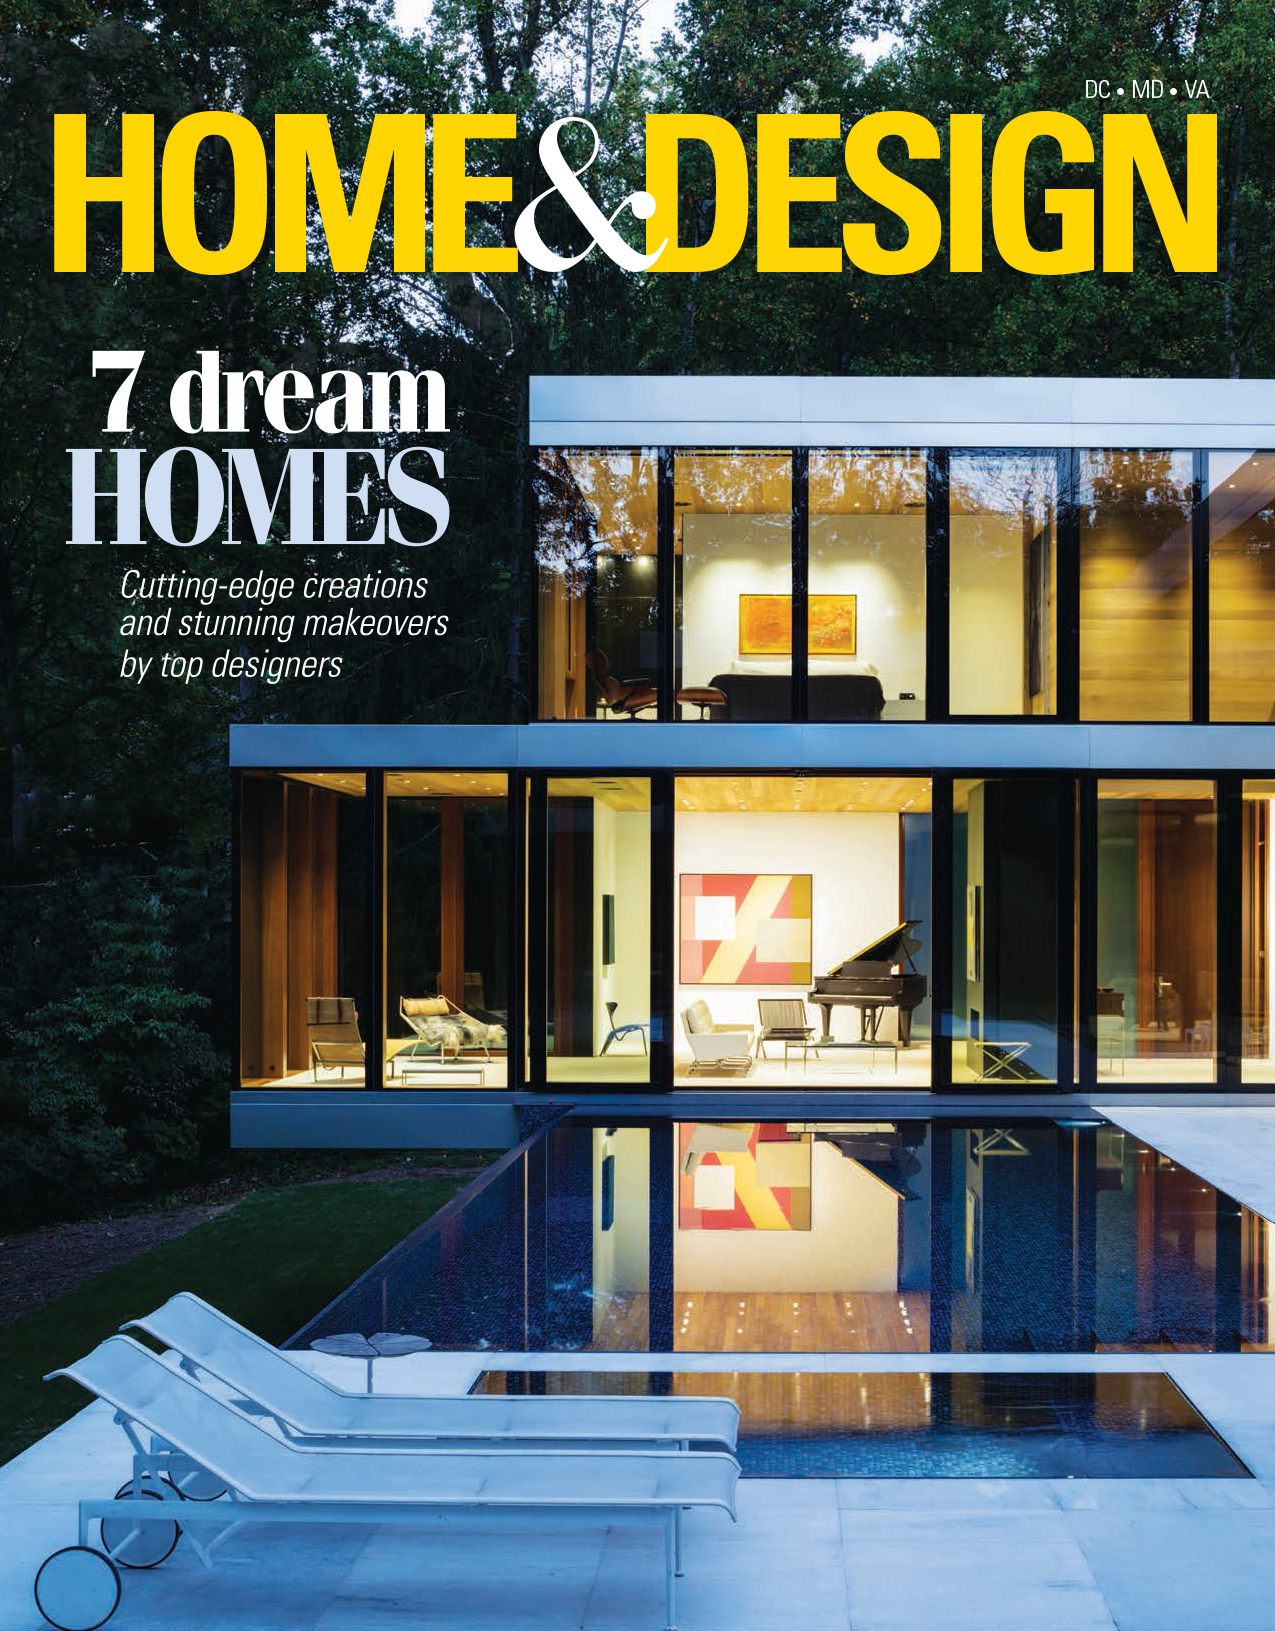 home-and-design-magazine-cover-october-2018.jpg